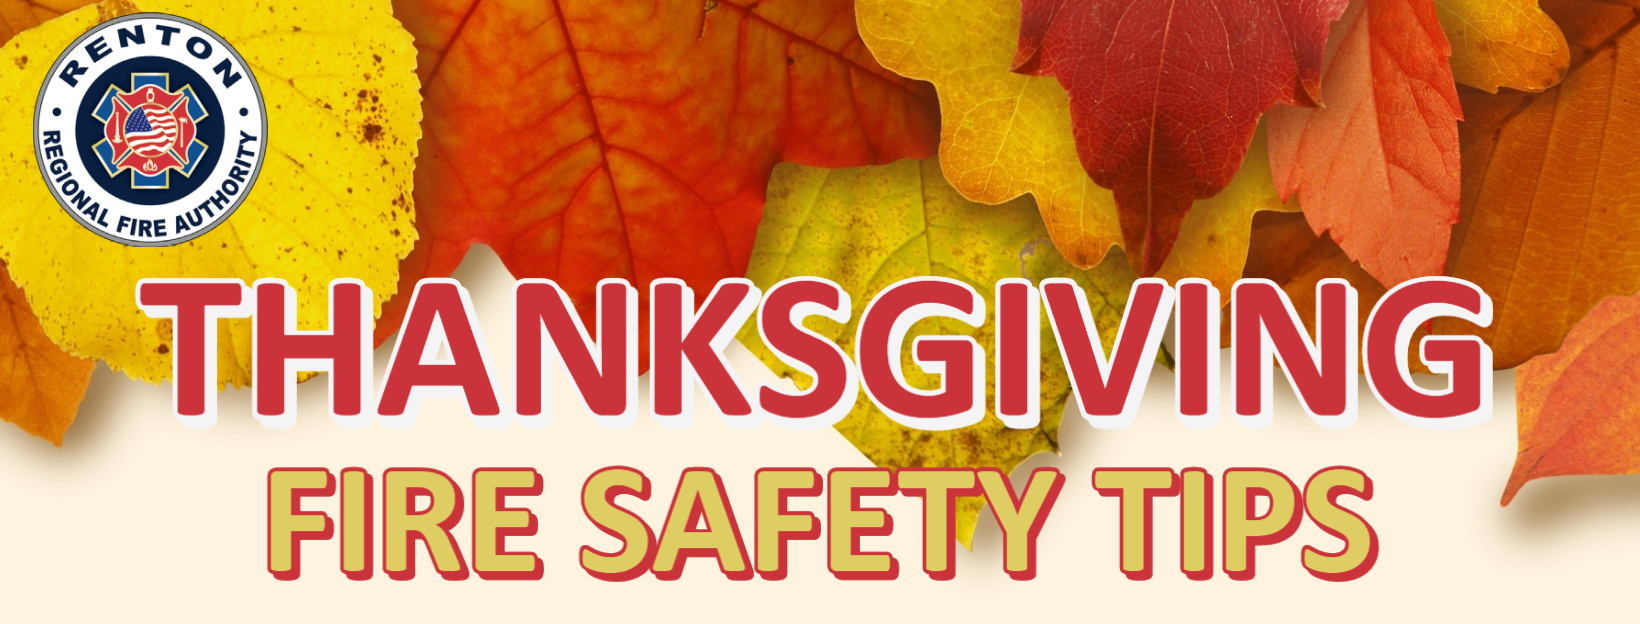 2020 Thanksgiving Fire Safety Tips